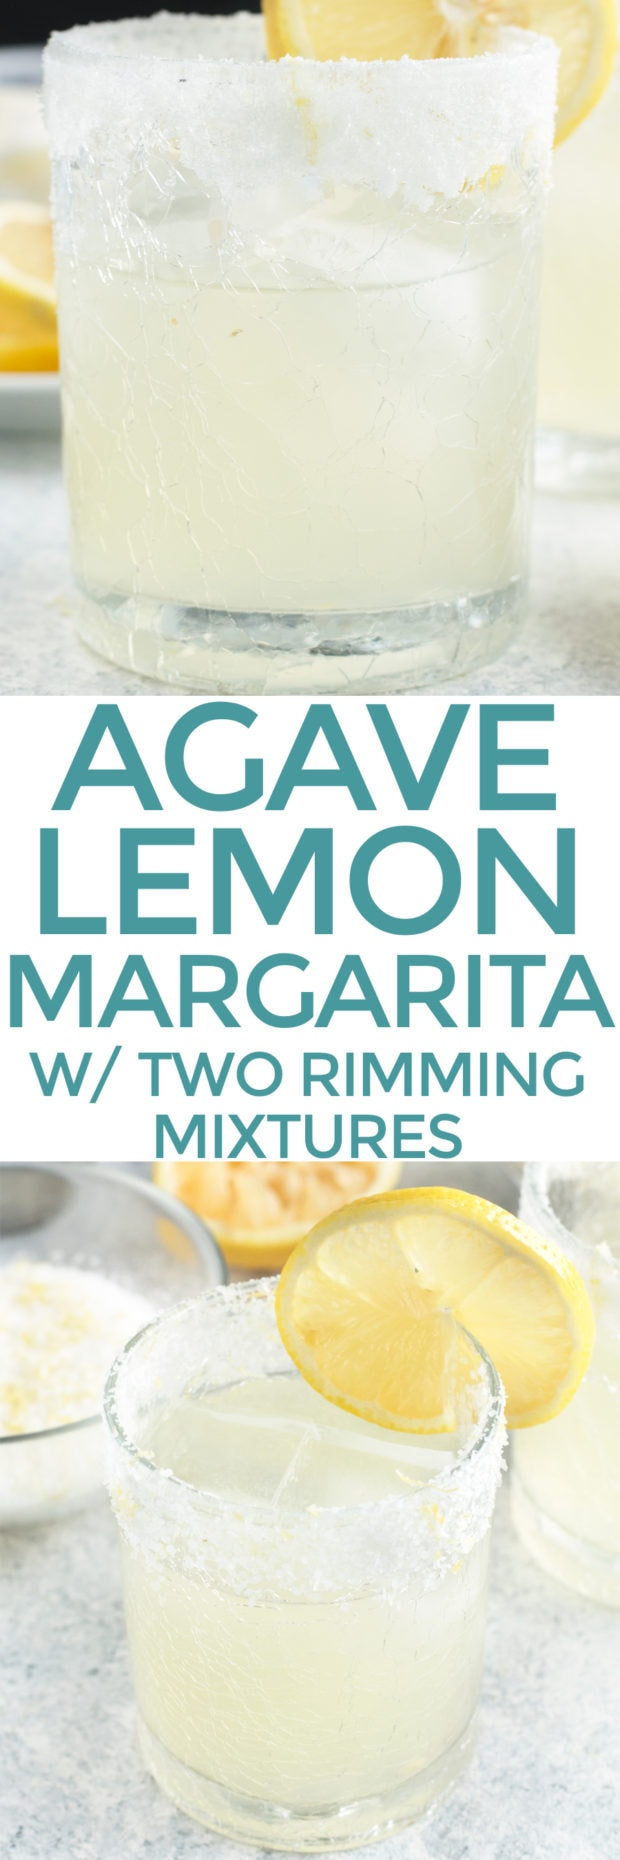 Lemon Agave Margarita